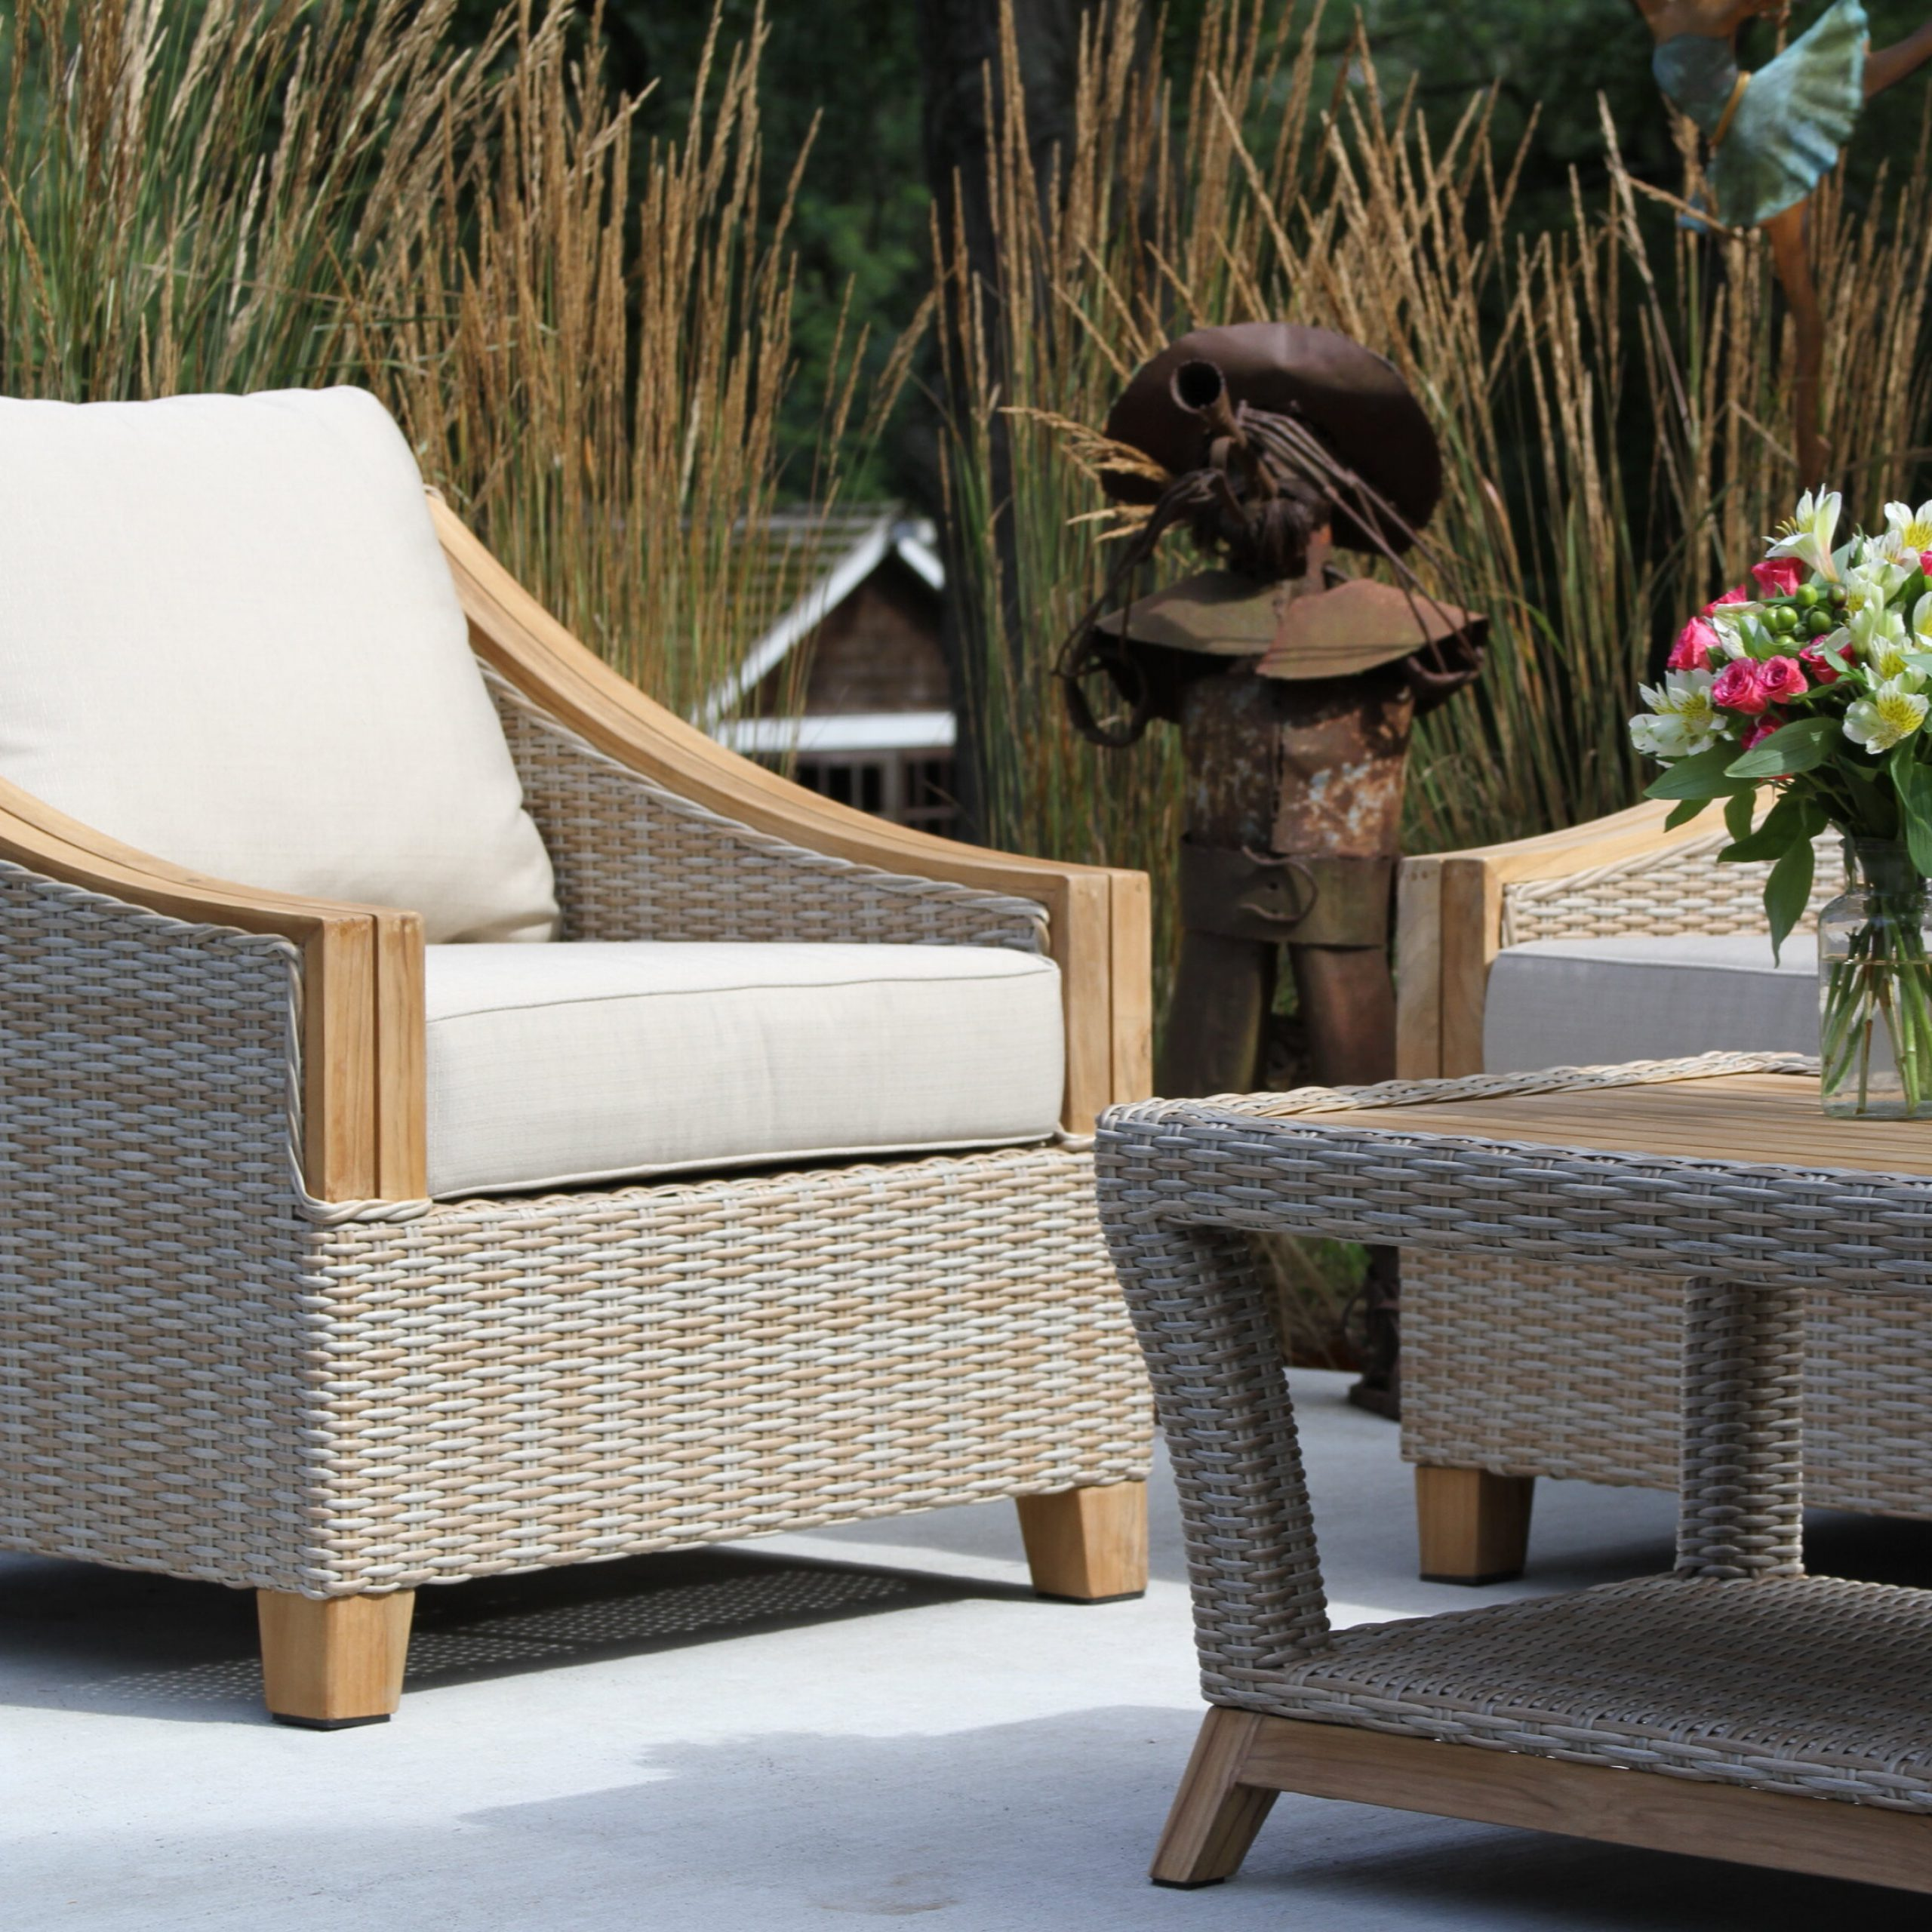 Most Recently Released Brunswick Teak Patio Sofas With Cushions Inside Kincaid Teak Patio Chair With Cushions (Gallery 19 of 25)